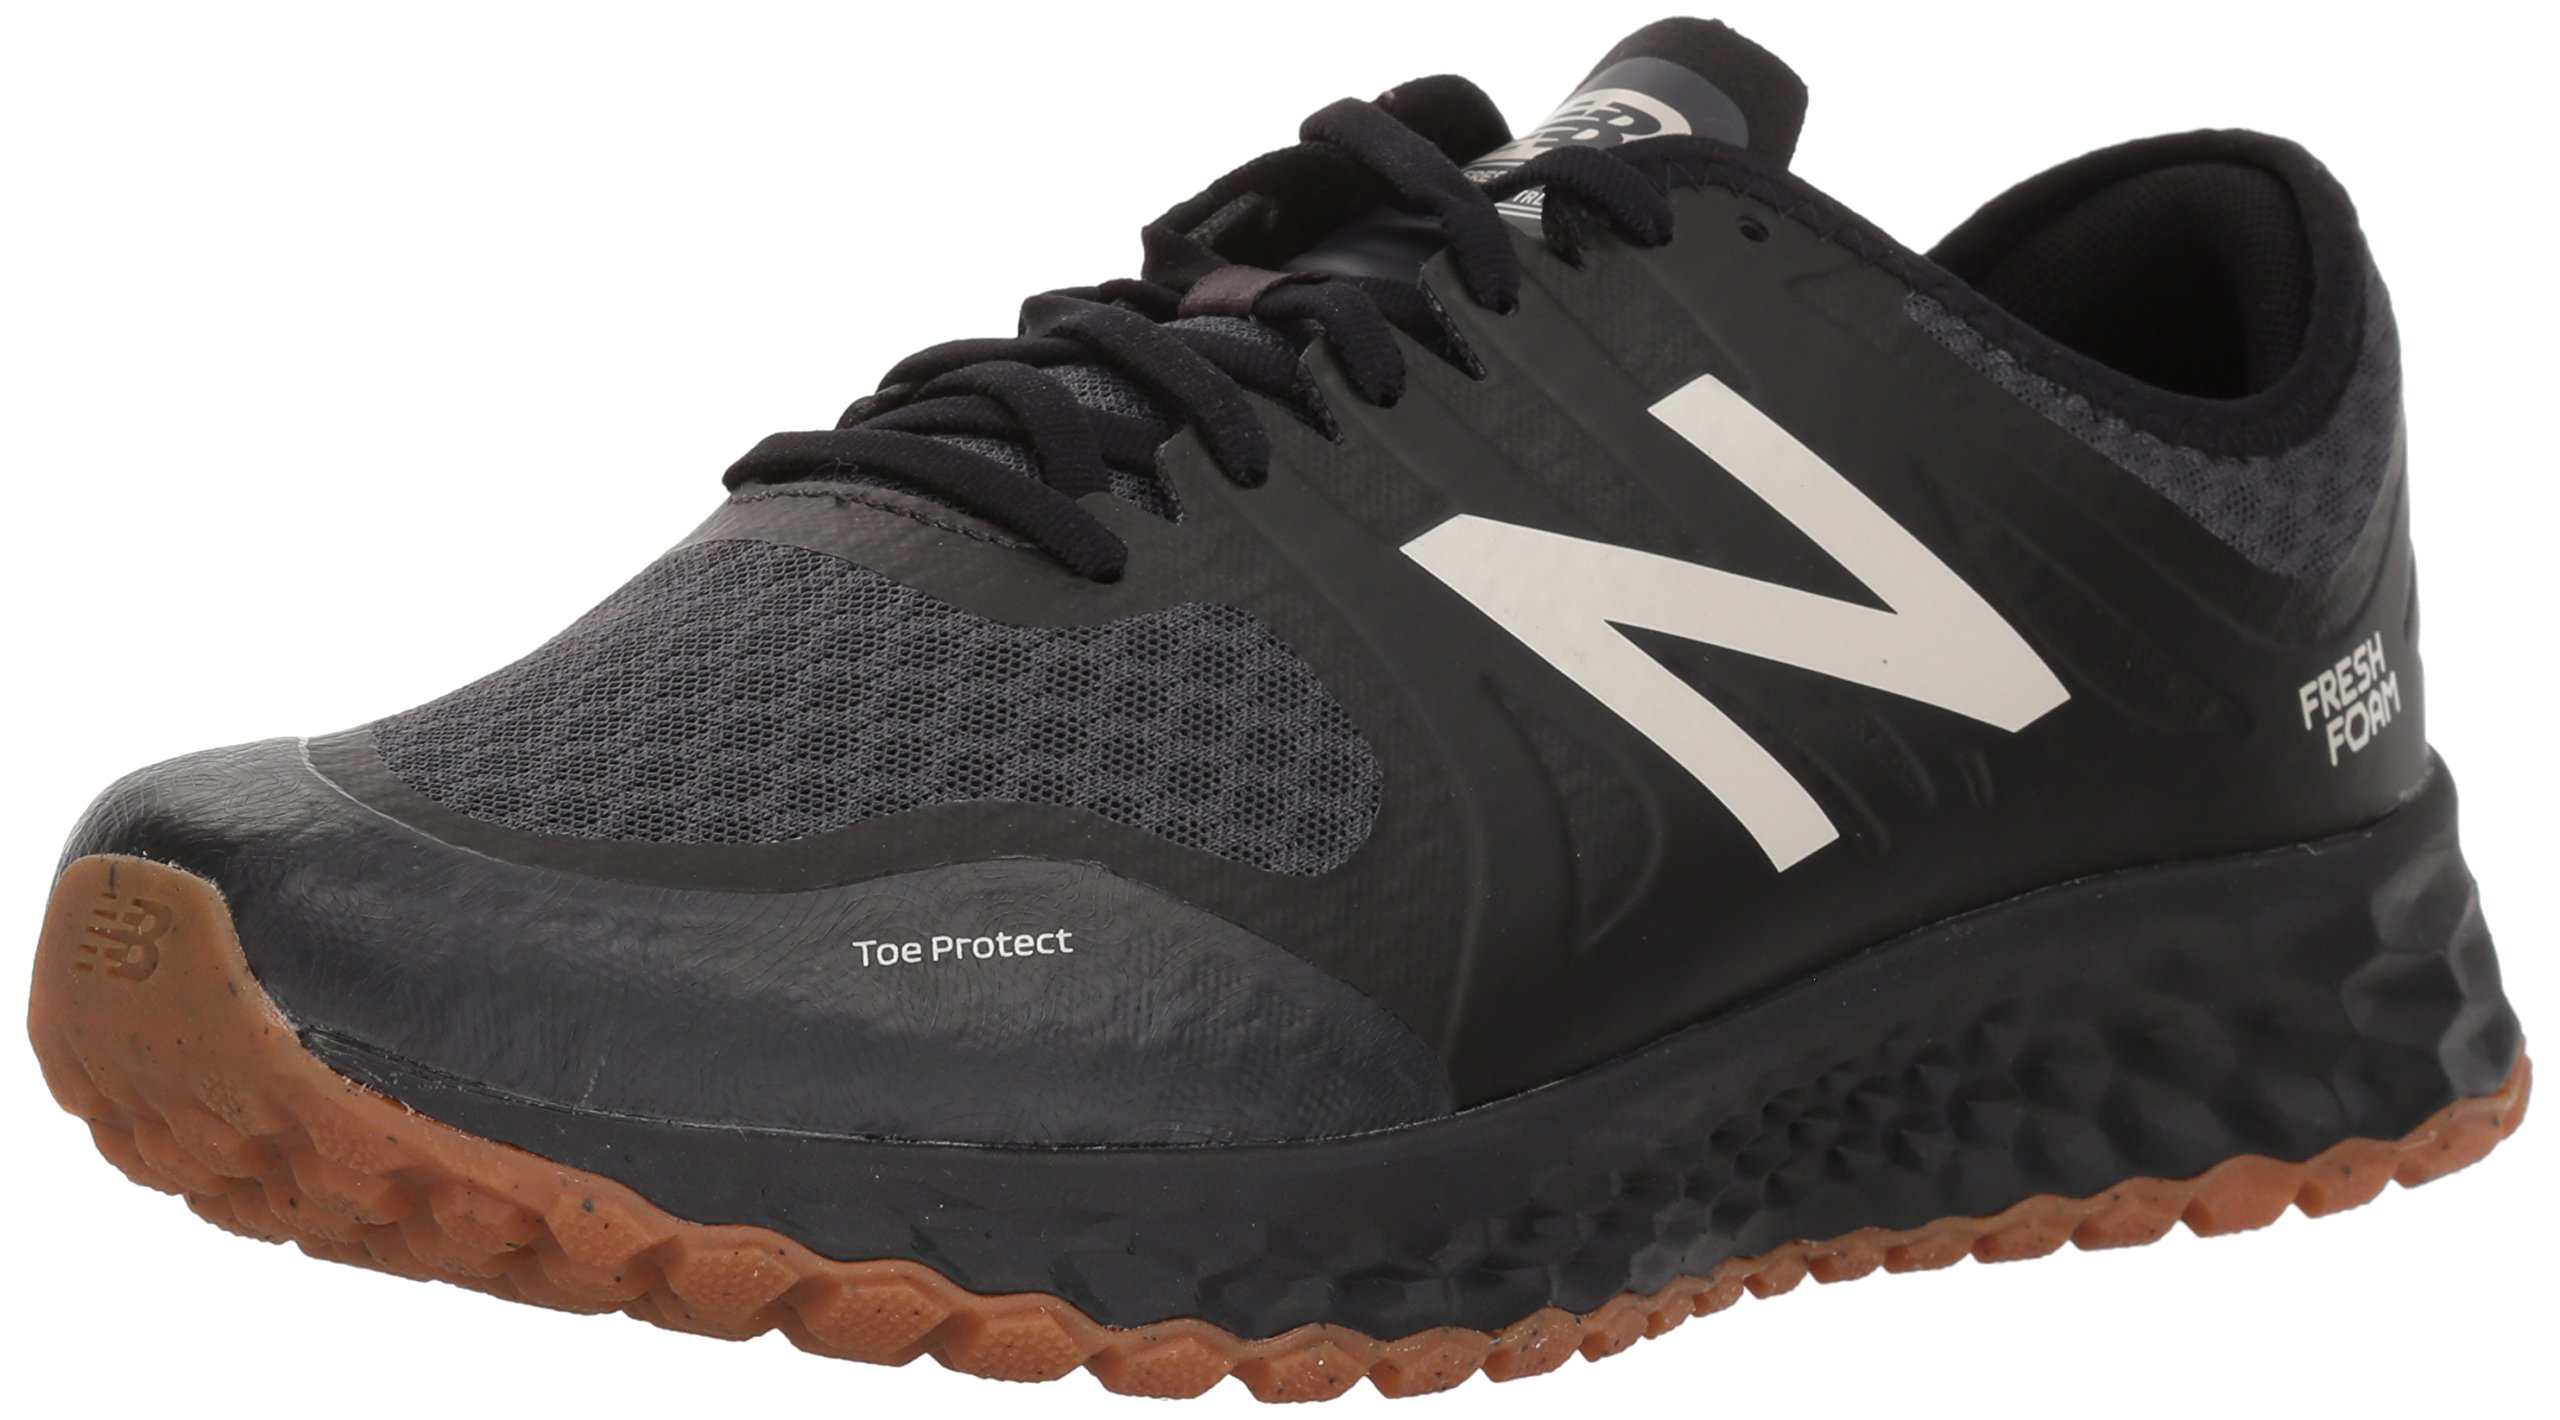 New Balance Men's Kaymin Trail v1 Fresh Foam Trail Running Shoe, Black, 11 4E US by New Balance